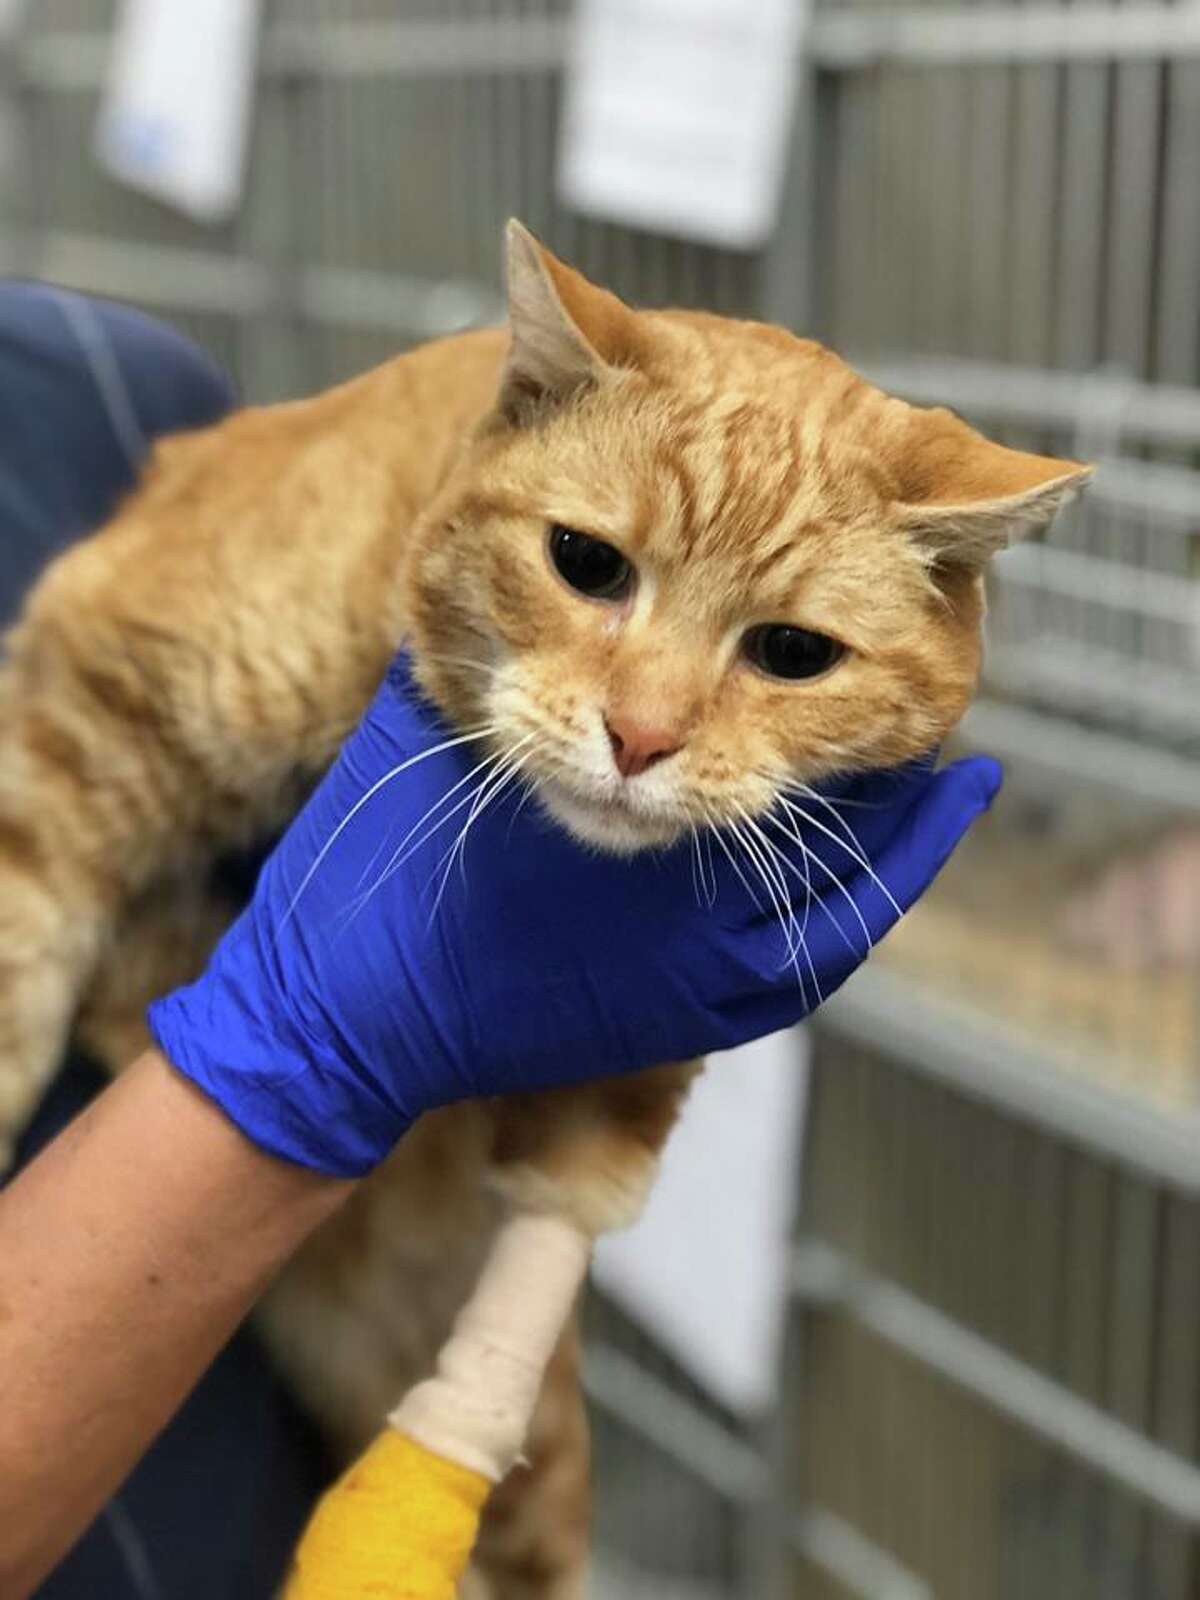 """Male, neutered. SF SPCA ID: A40173430 SF SPCA given name (NOT the animal's real name): """"Blake"""" If you believe this cat is yours, call SF SPCA at 415-554-3030."""